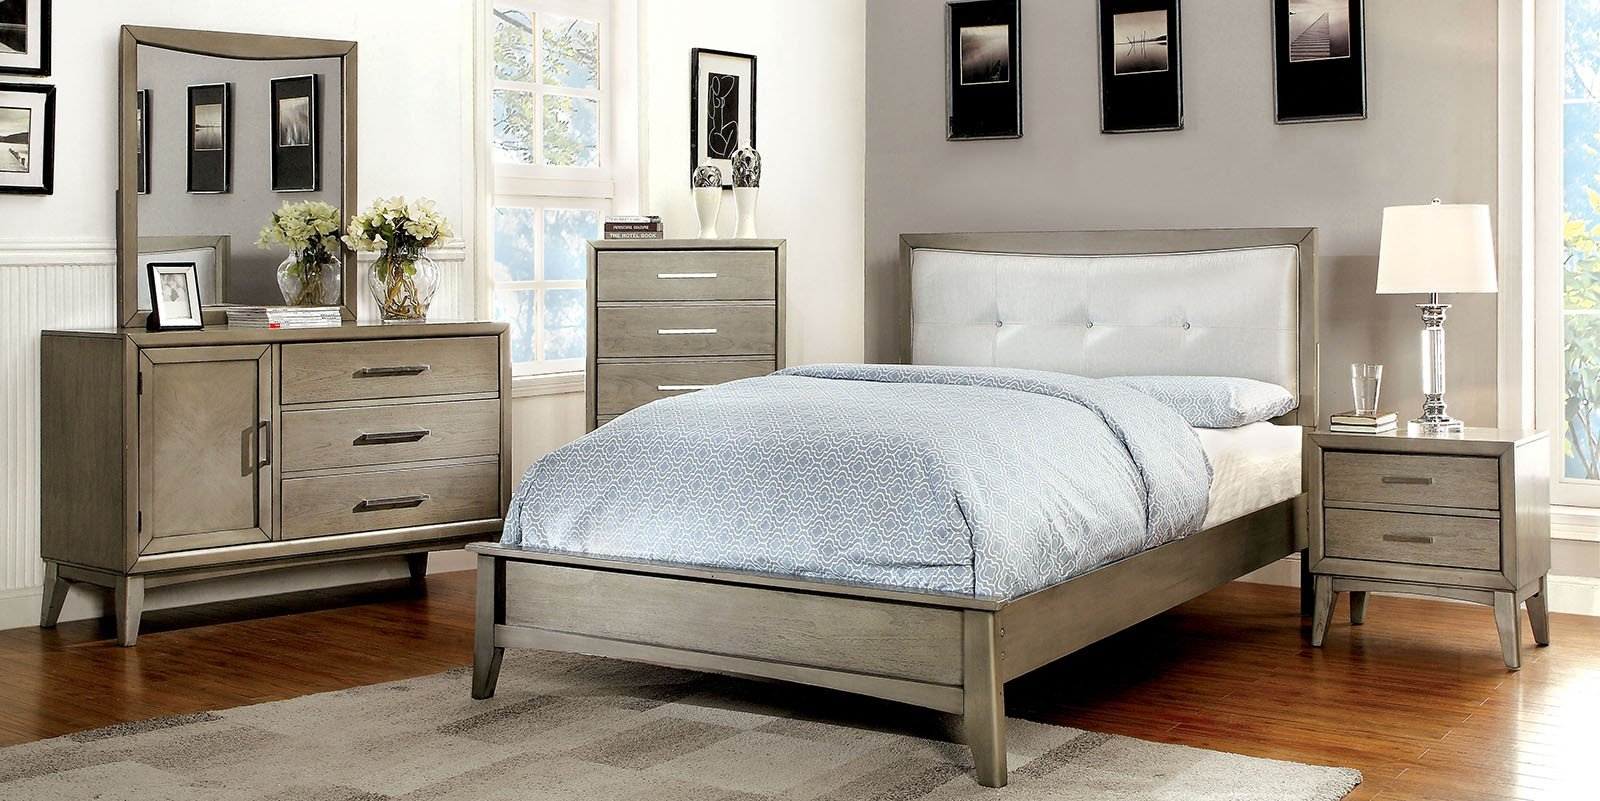 Esofastore New Bedroom Furniture Modern Platform Bed Contemporary ...